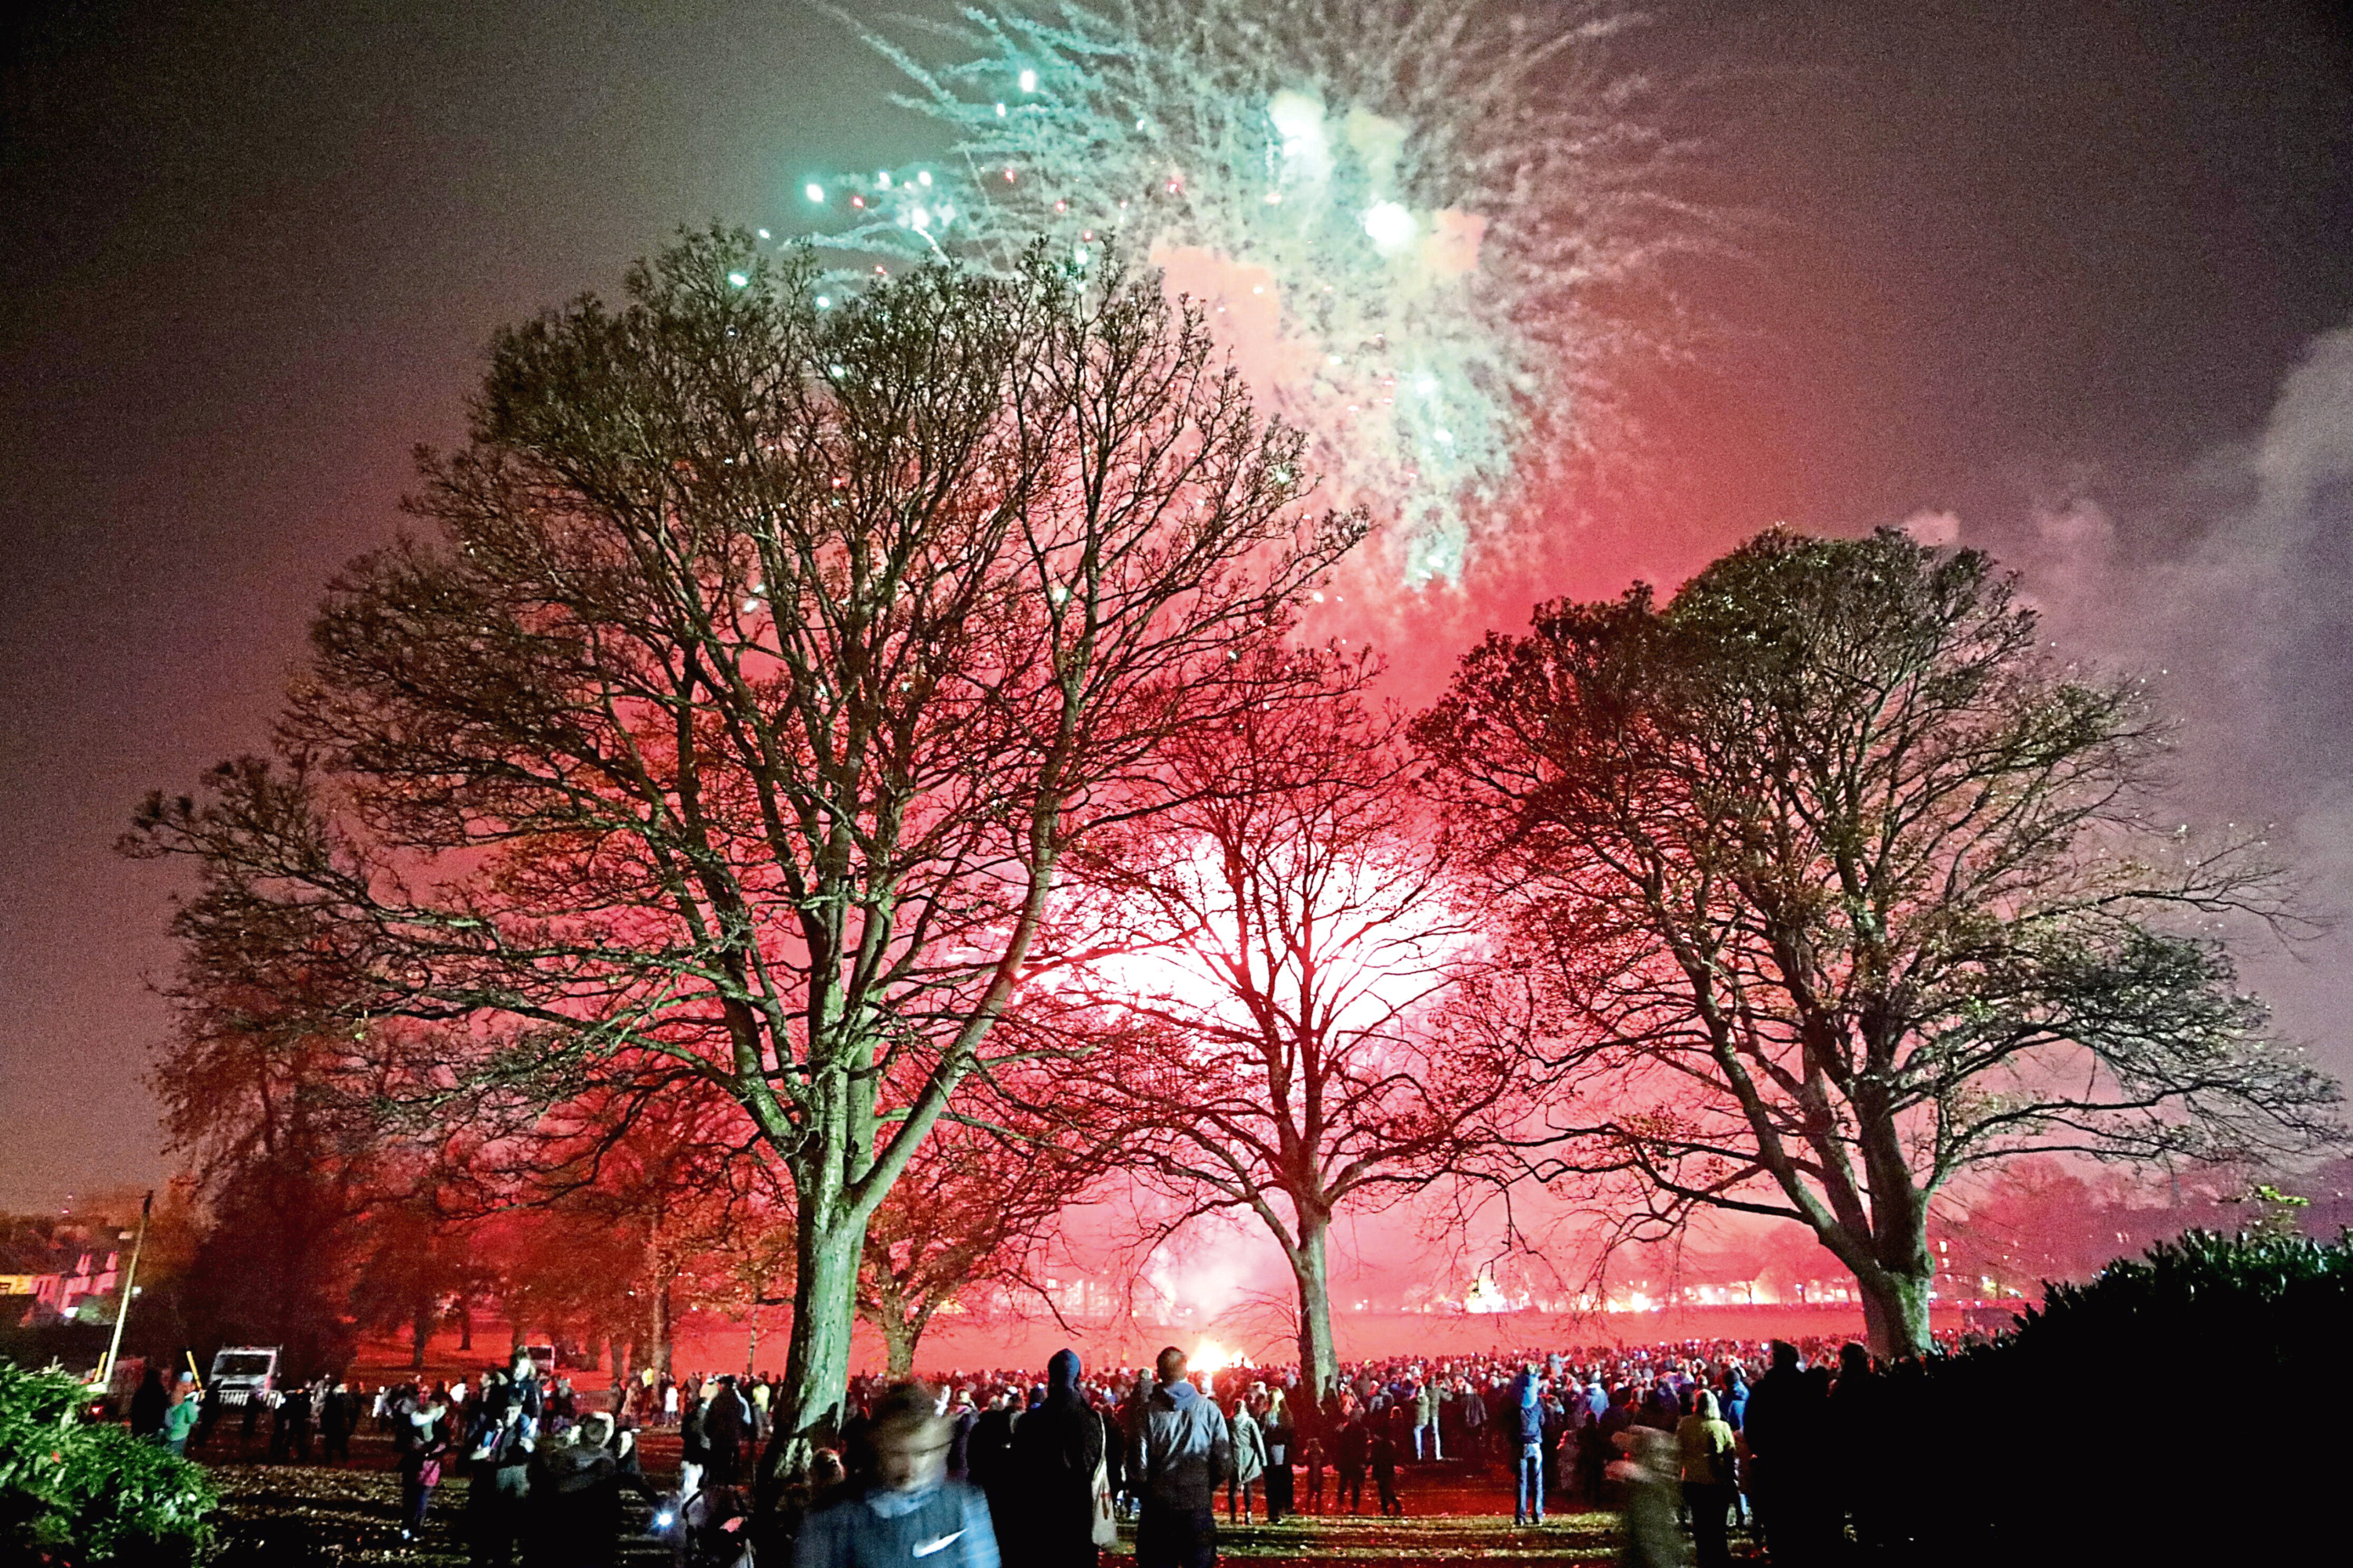 Last year's fireworks display in Baxter Park.